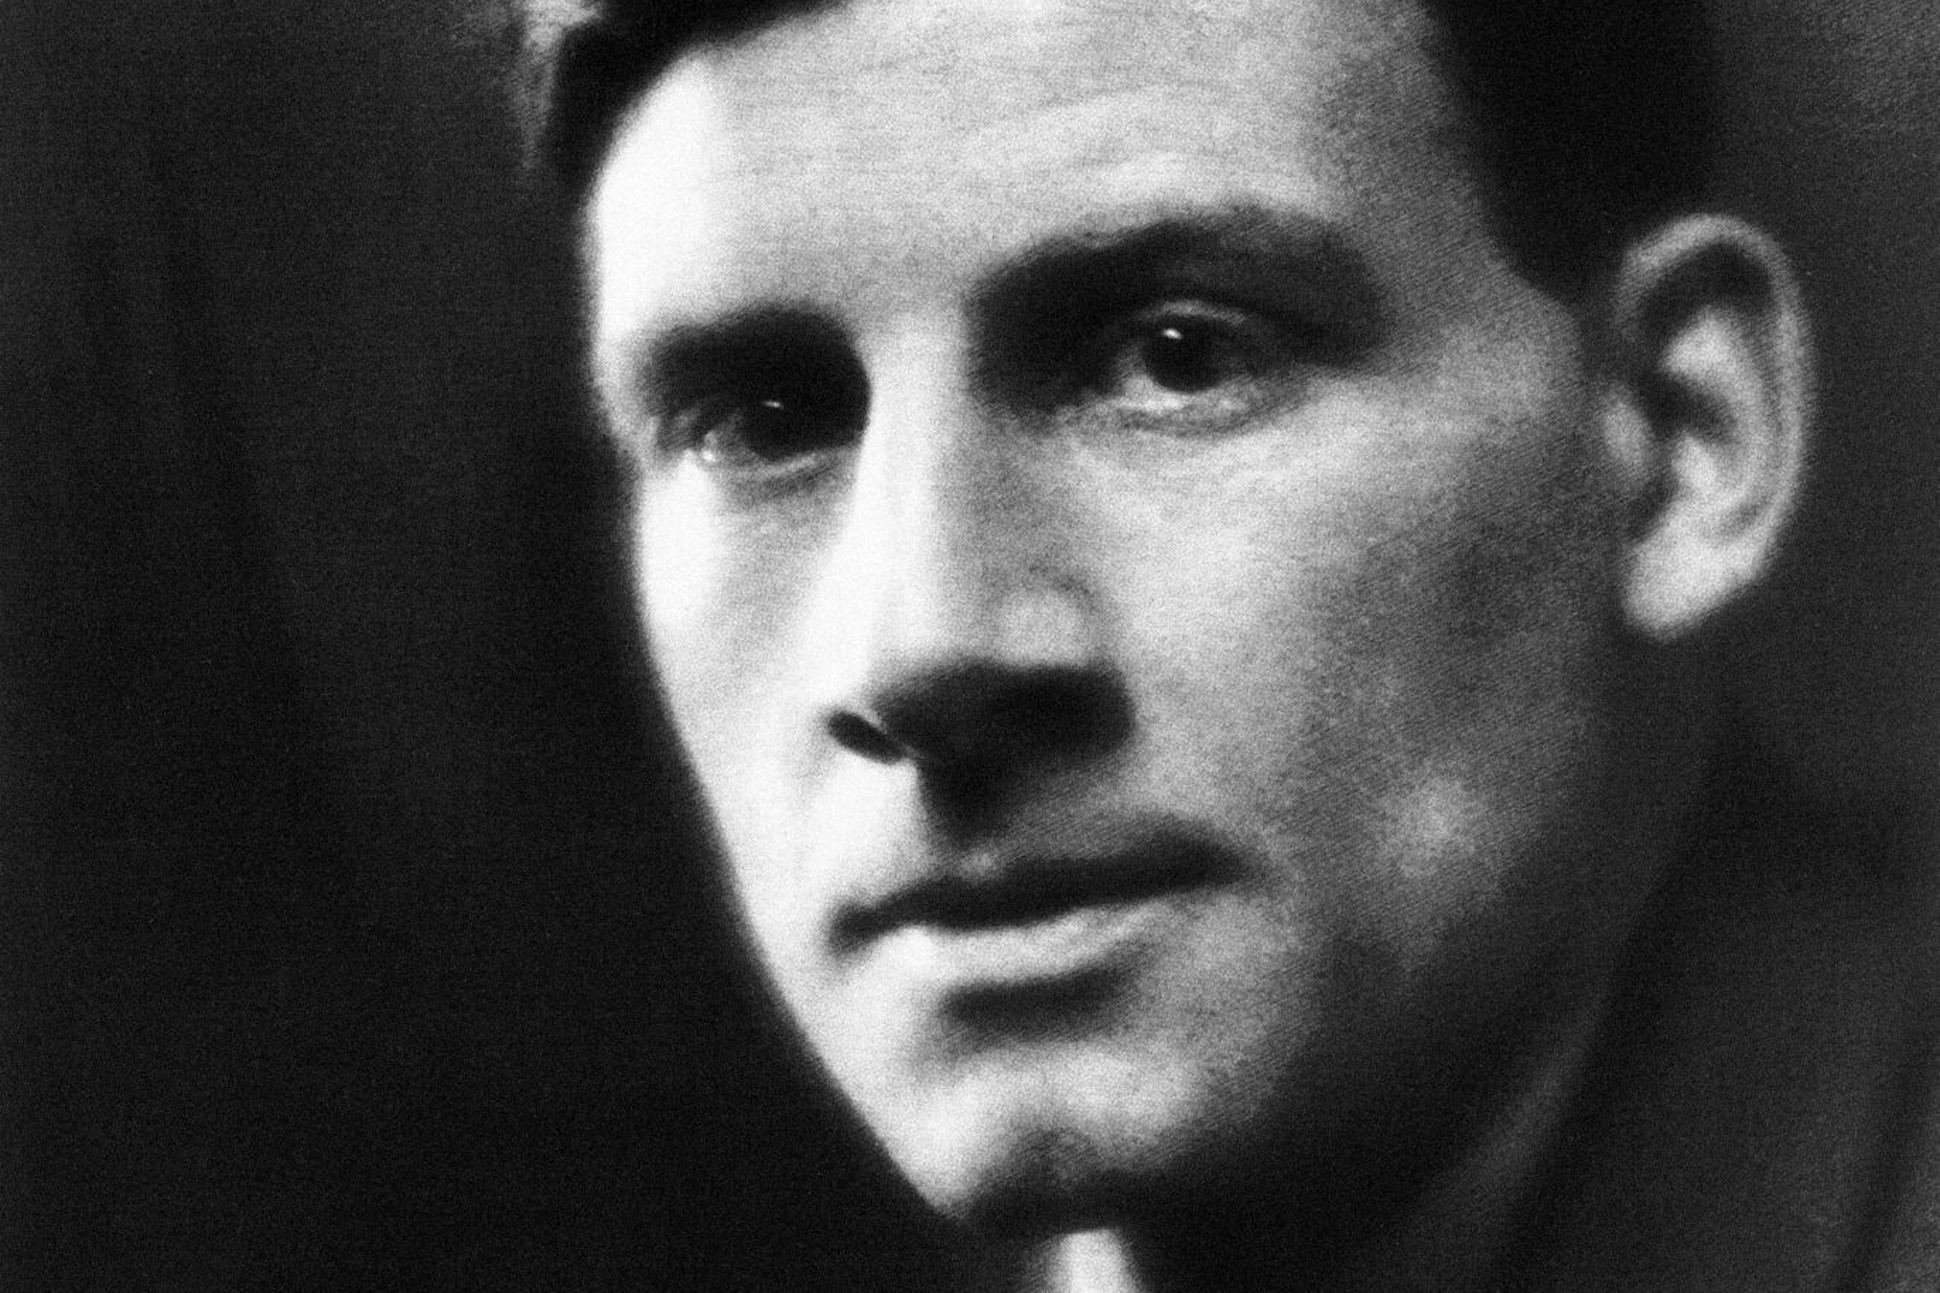 Siegfried Sassoon photo #7109, Siegfried Sassoon image